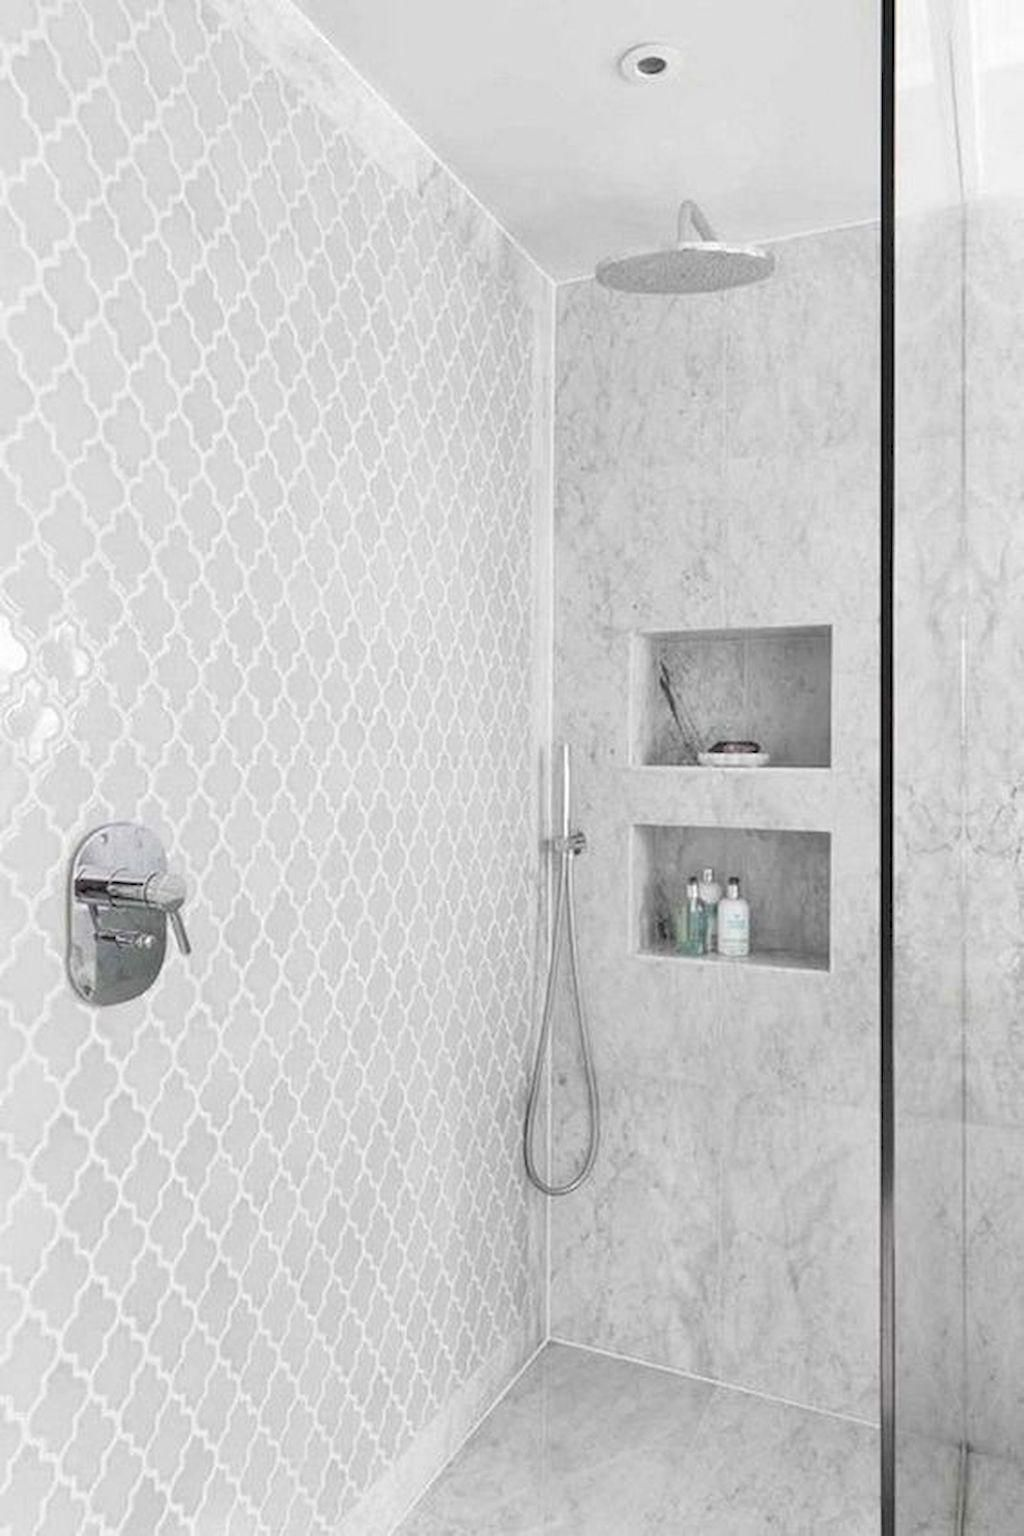 Photo of Impressive concepts to consider #showeraesthetic